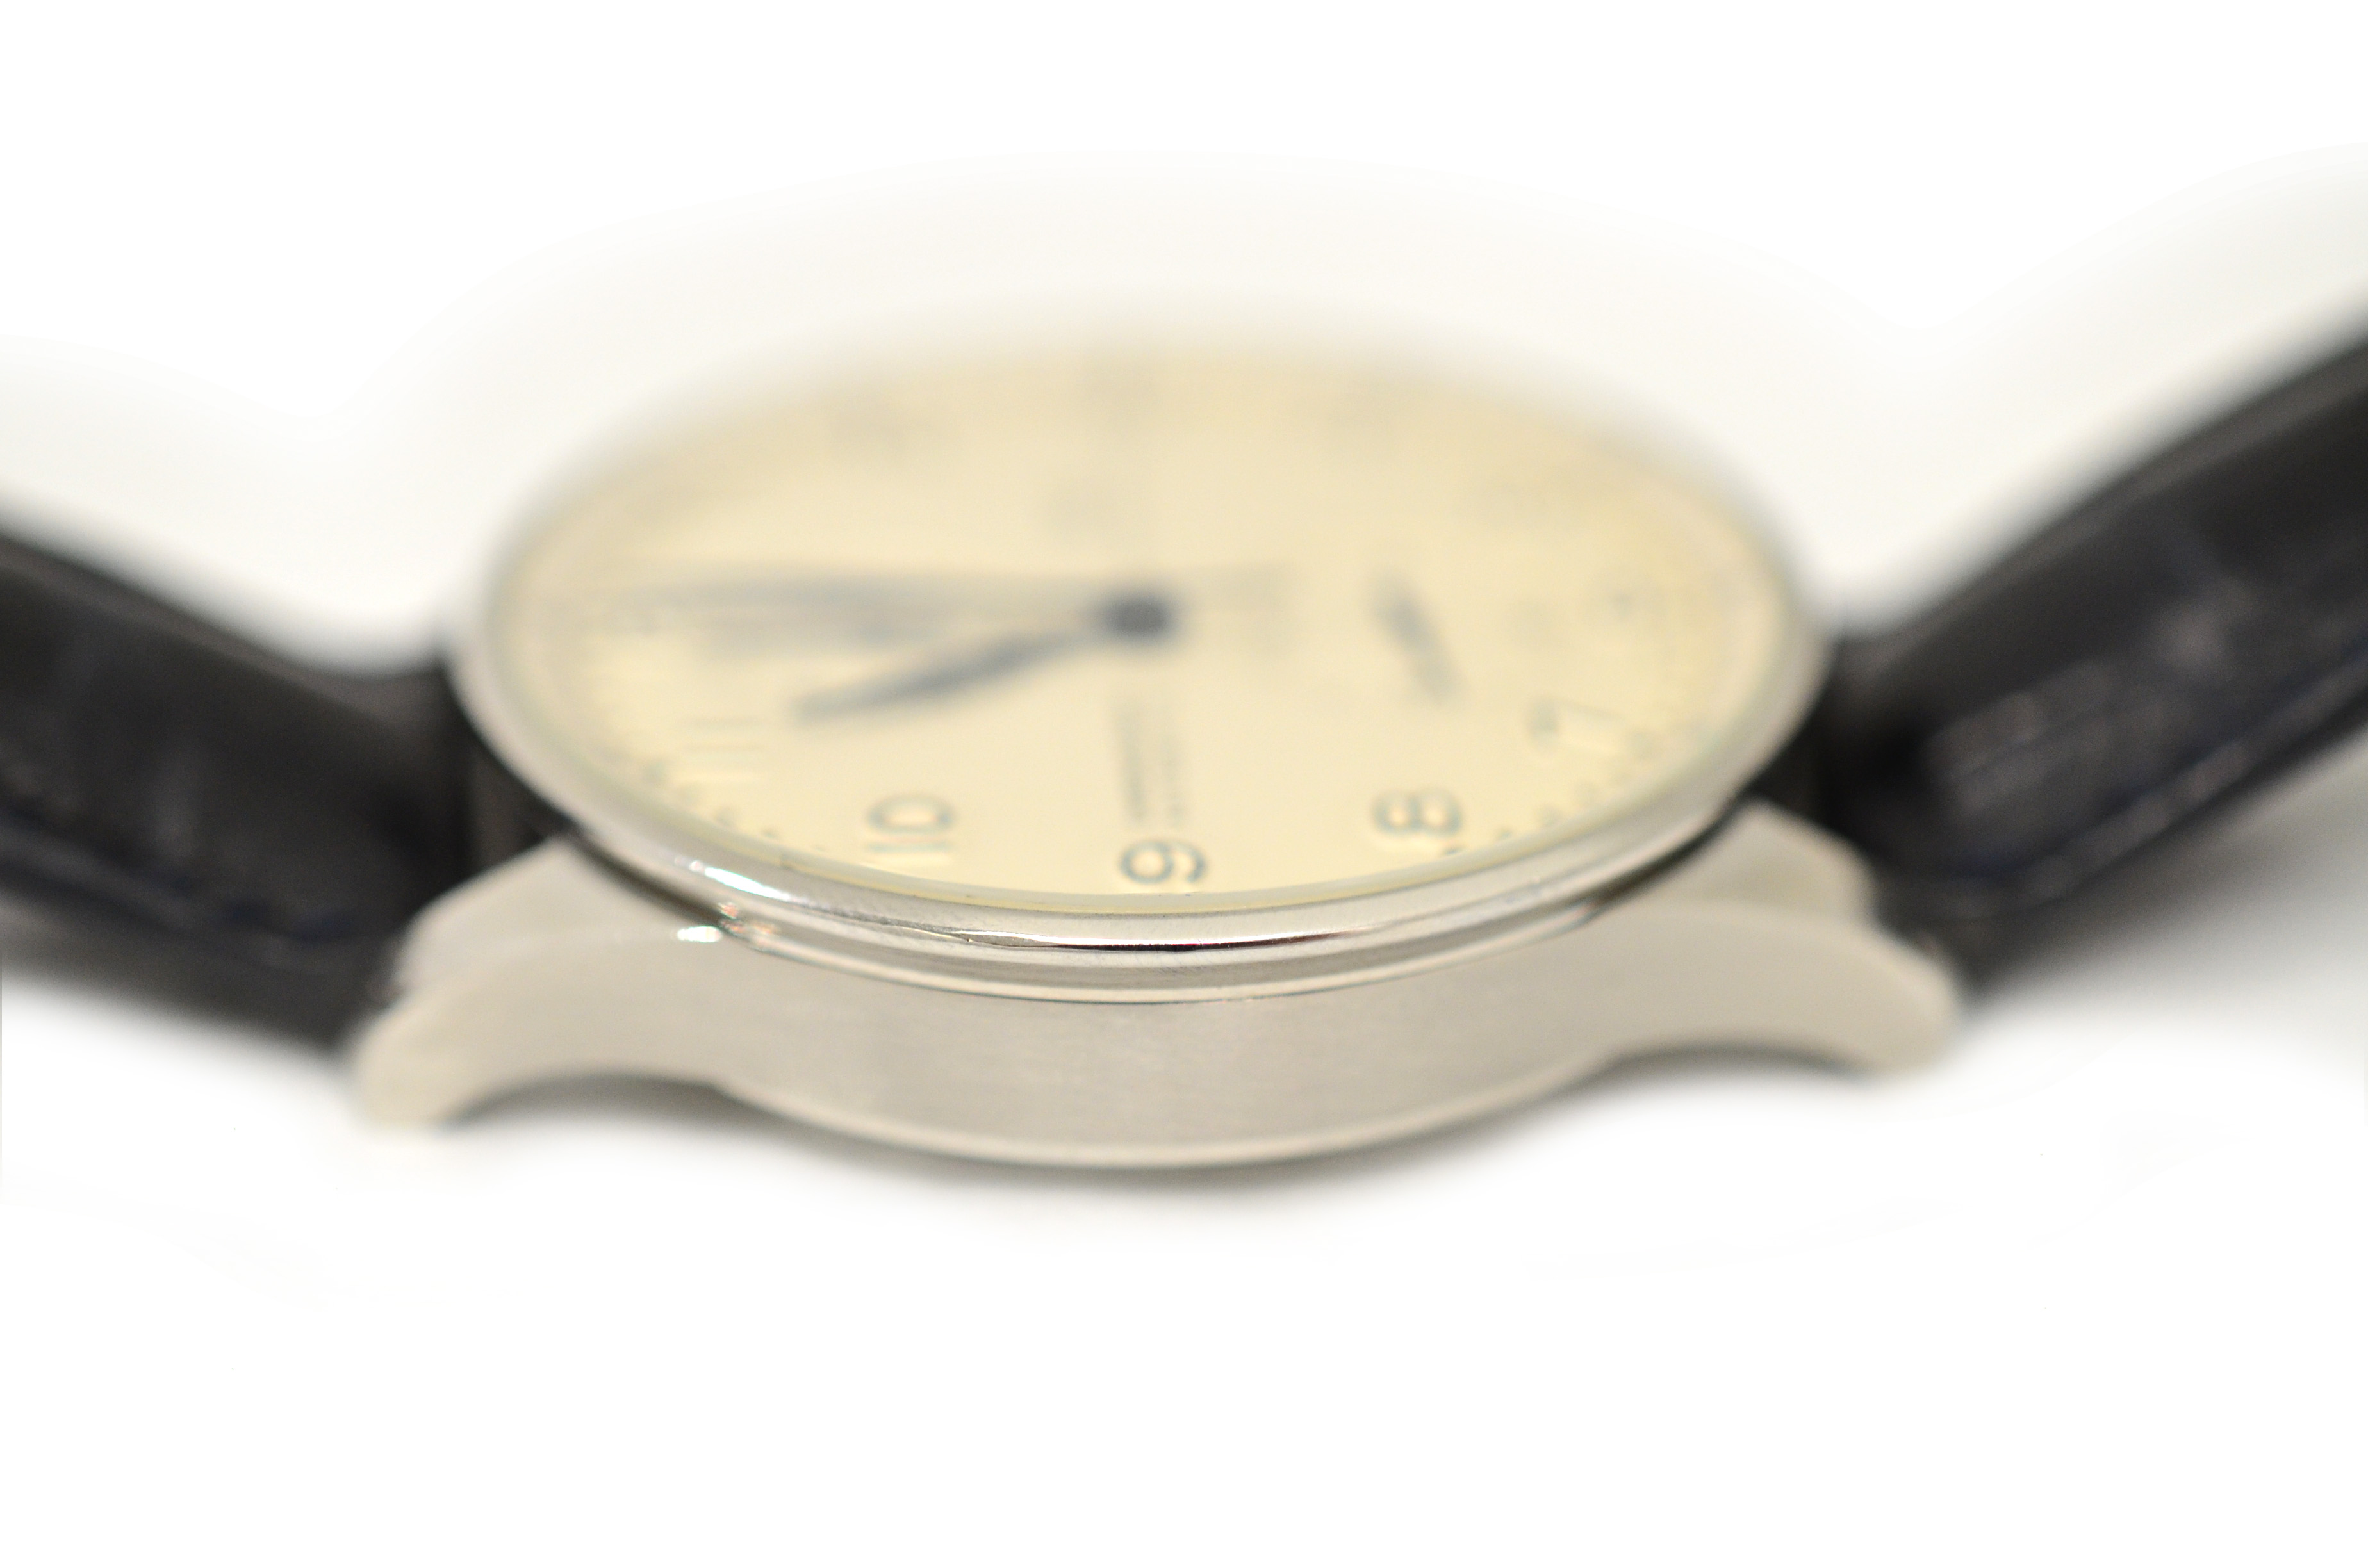 Lot 38 - IWC - A gents stainless steel Automatic IWC Portuguese Chronograph wristwatch, model IW371446,